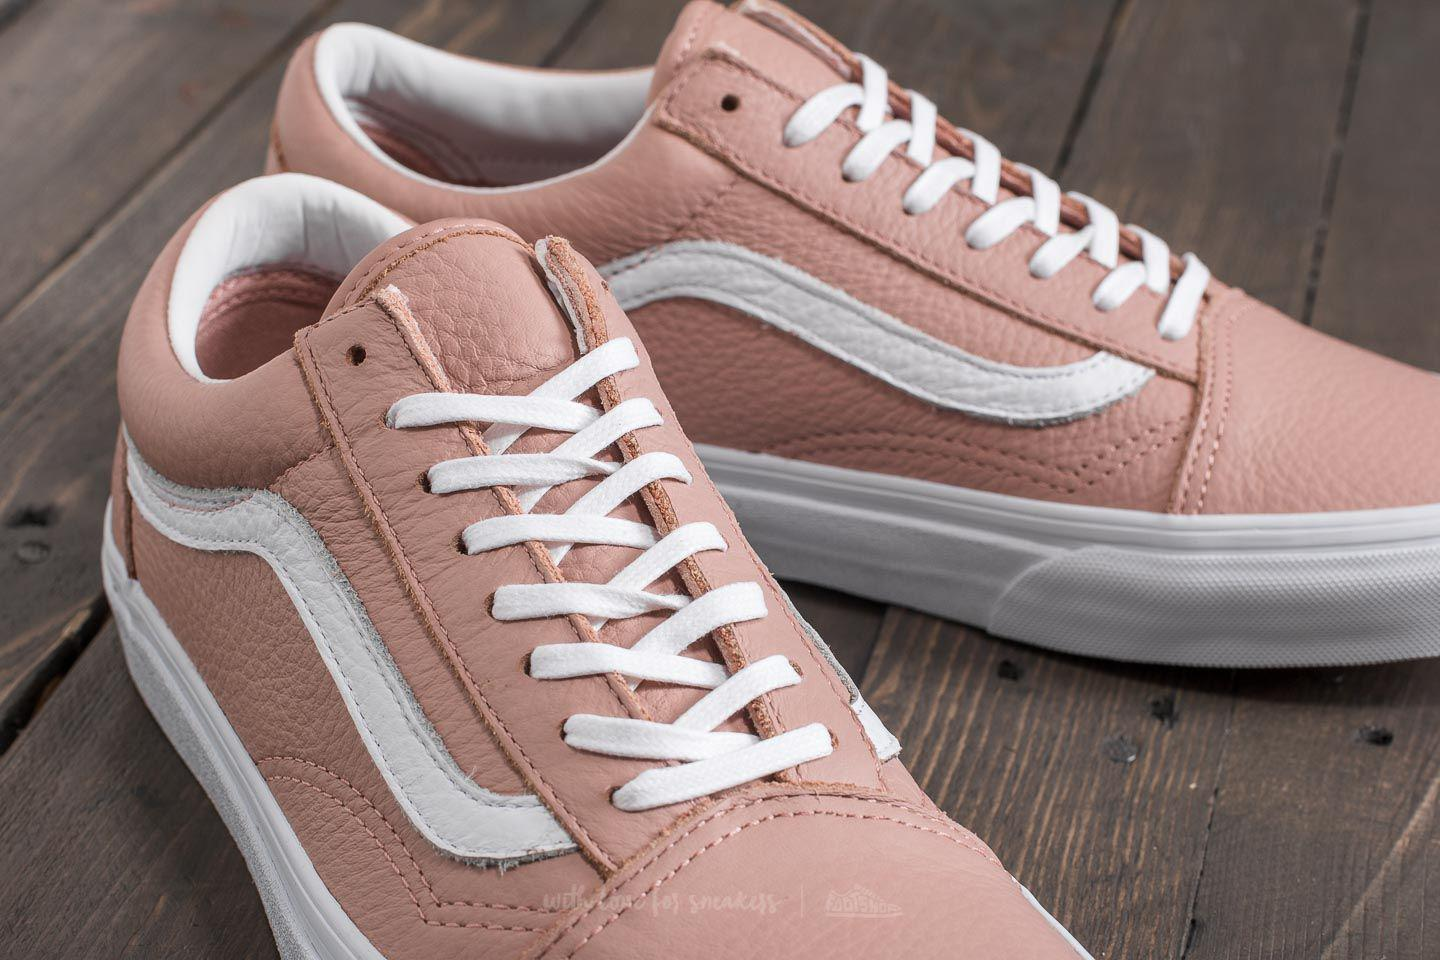 0a8c46c838a849 Lyst - Vans Old Skool Dx (tumble Leather) Mahogany Rose-true White